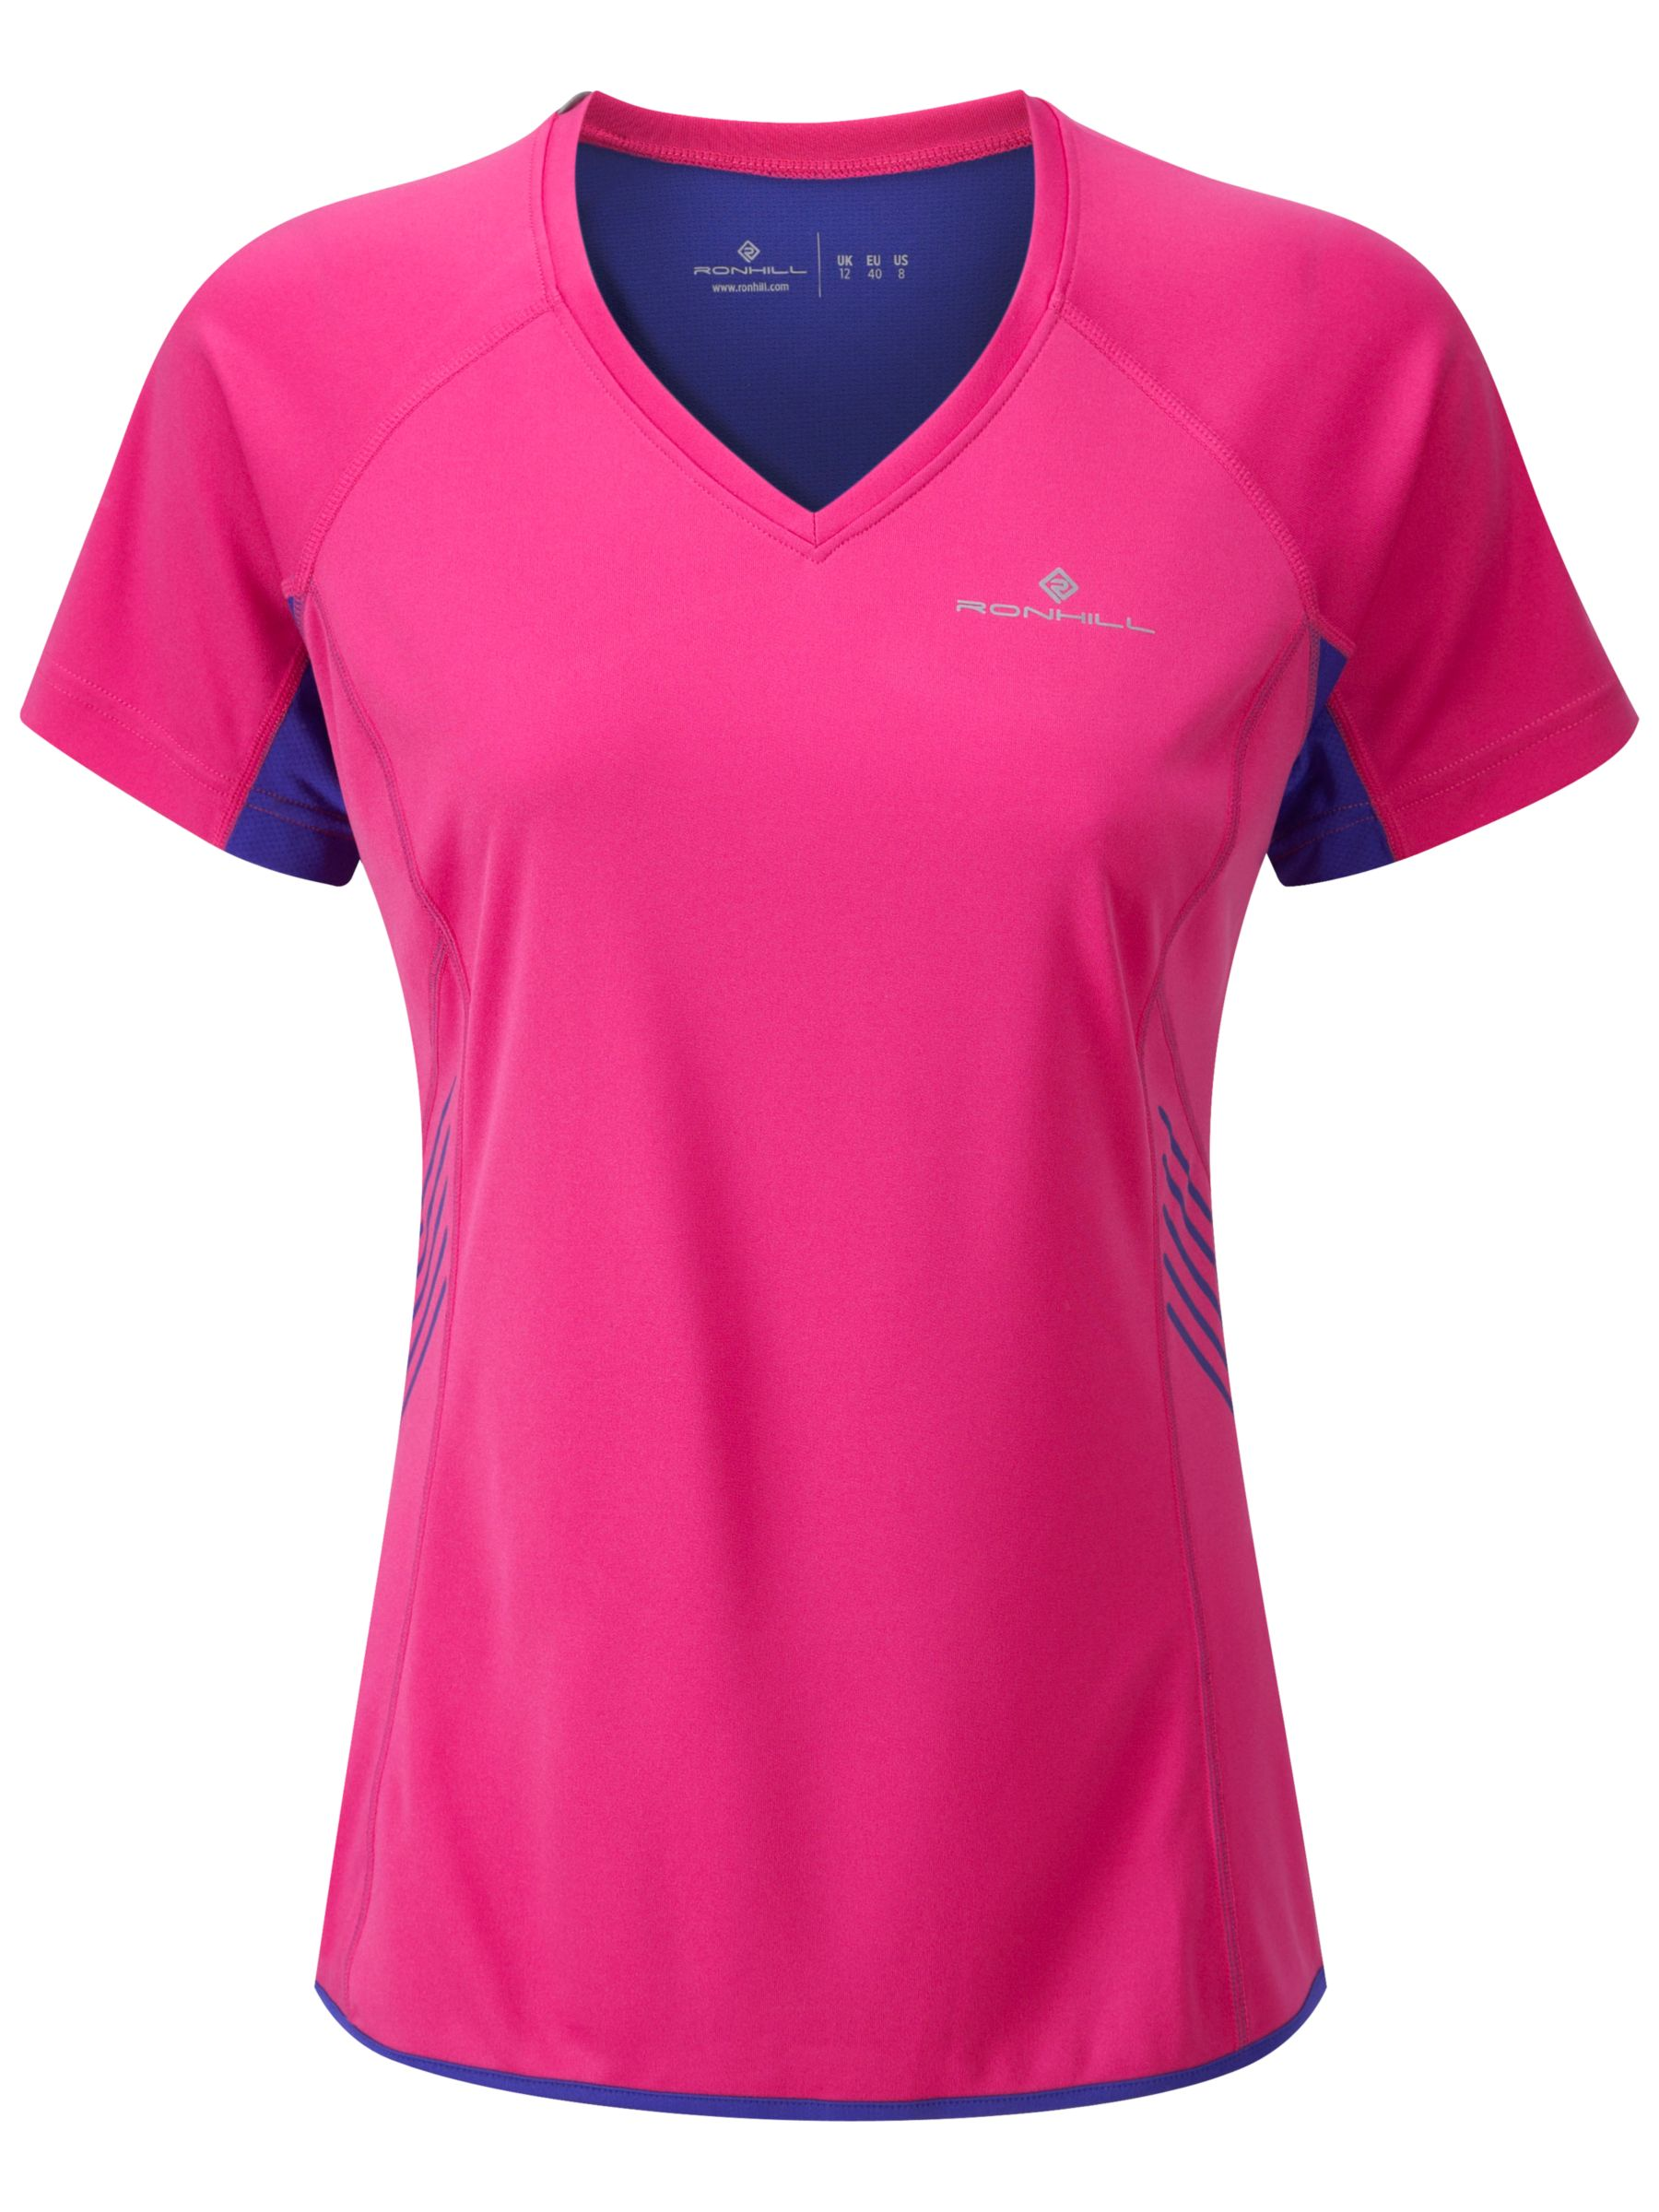 Ronhill Aspiration Short Sleeve T-Shirt, Fuchsia/Midnight